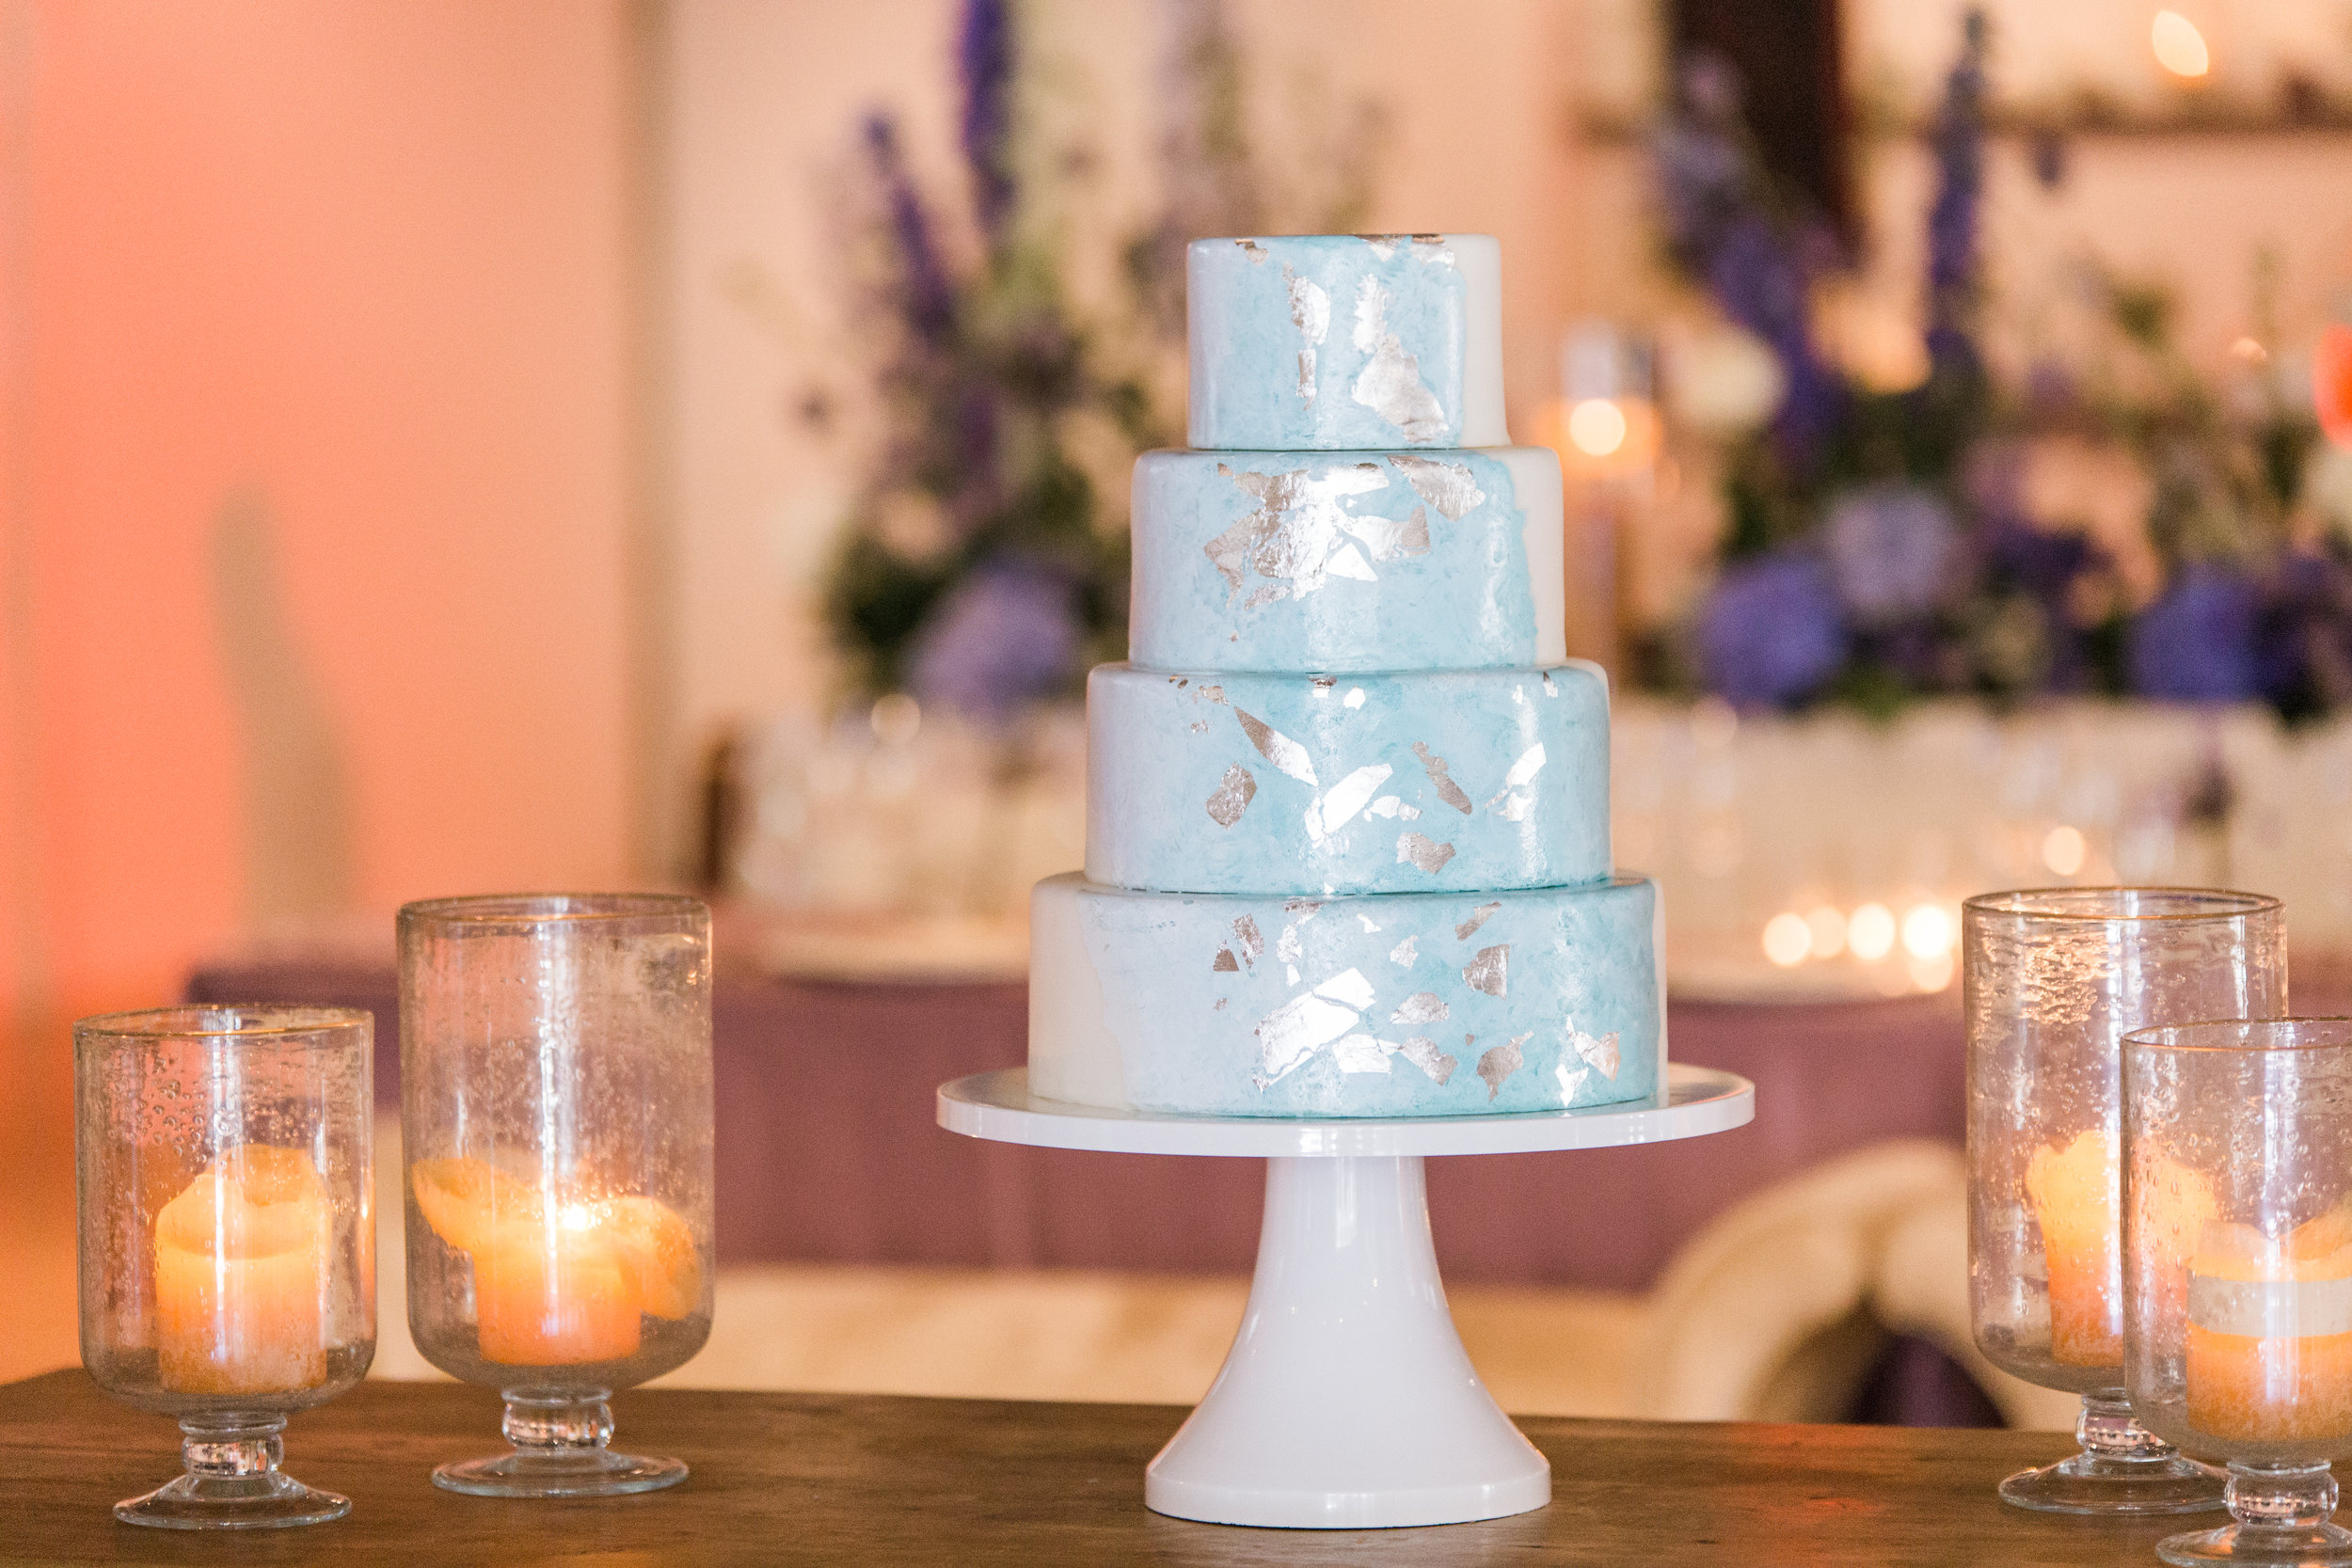 lilac, lavender _ periwinkle luxury wedding at cannon green charleston by scarlet plan _ design for revolution wedding tours (145).jpg